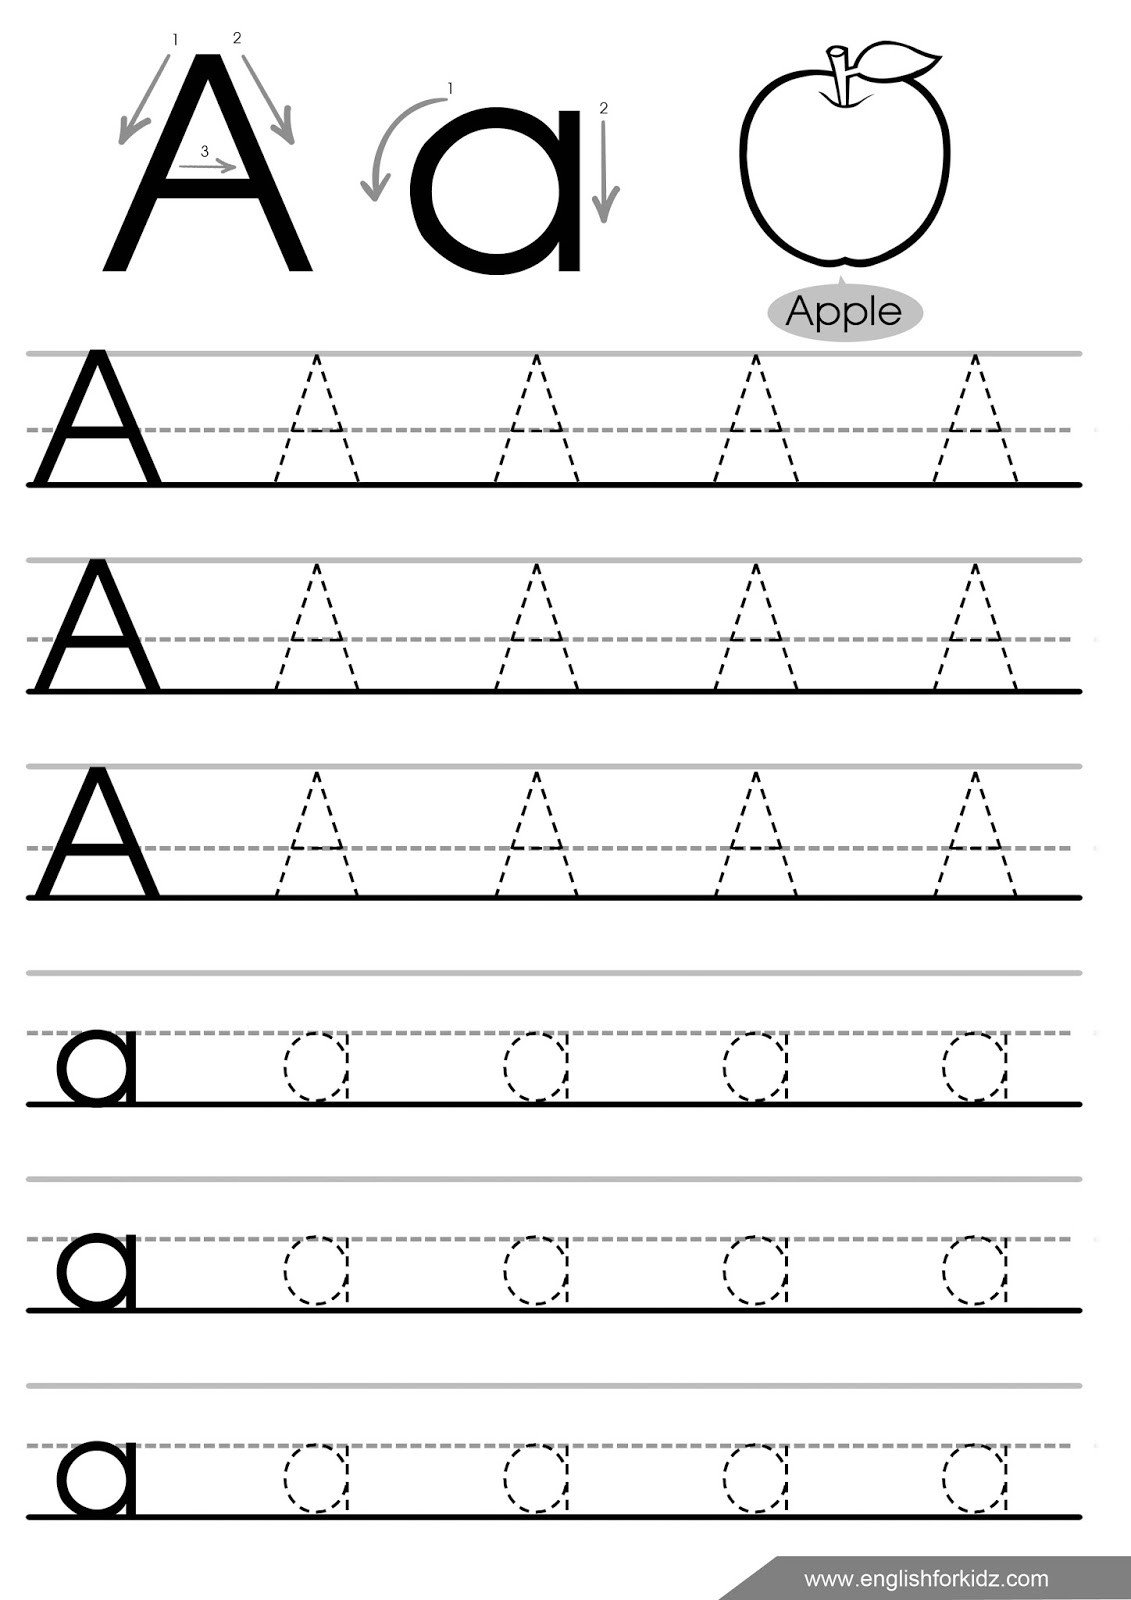 Alphabet Tracing Worksheets Az Pdf Math Worksheet Alphabet Tracing Worksheets for